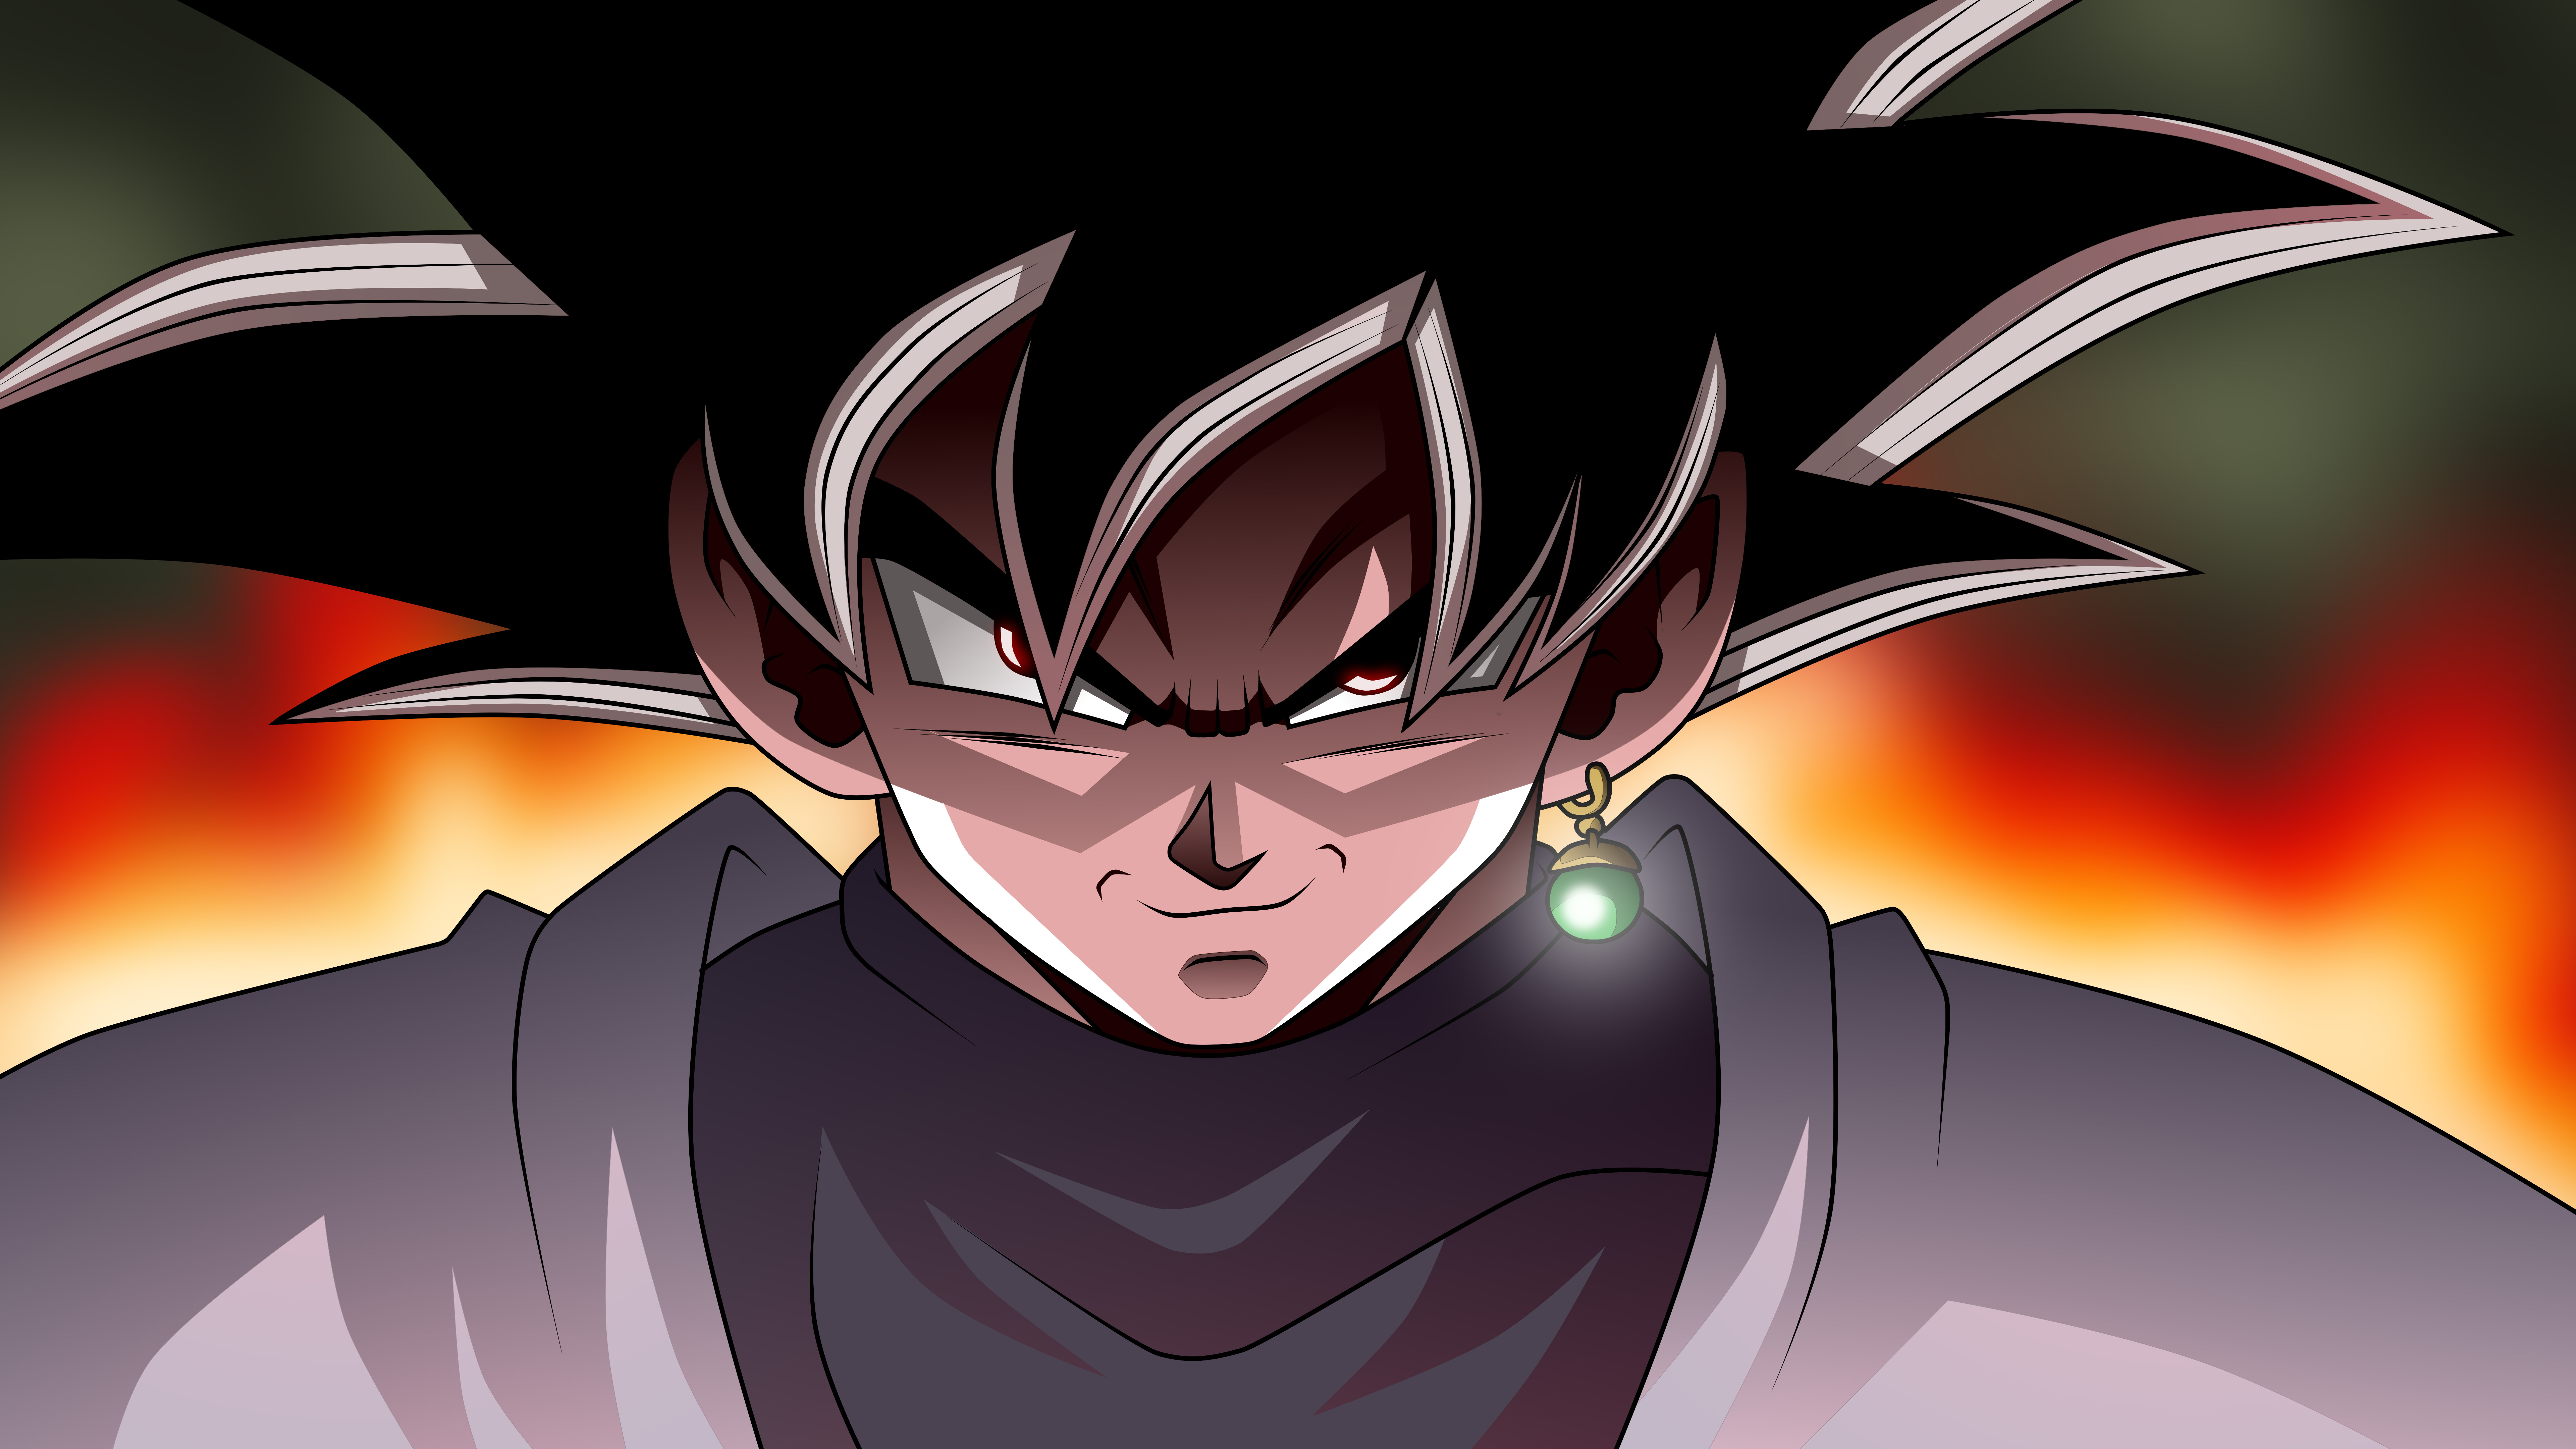 black goku dragon ball super 8k hd anime 4k wallpapers images backgrounds photos and pictures. Black Bedroom Furniture Sets. Home Design Ideas